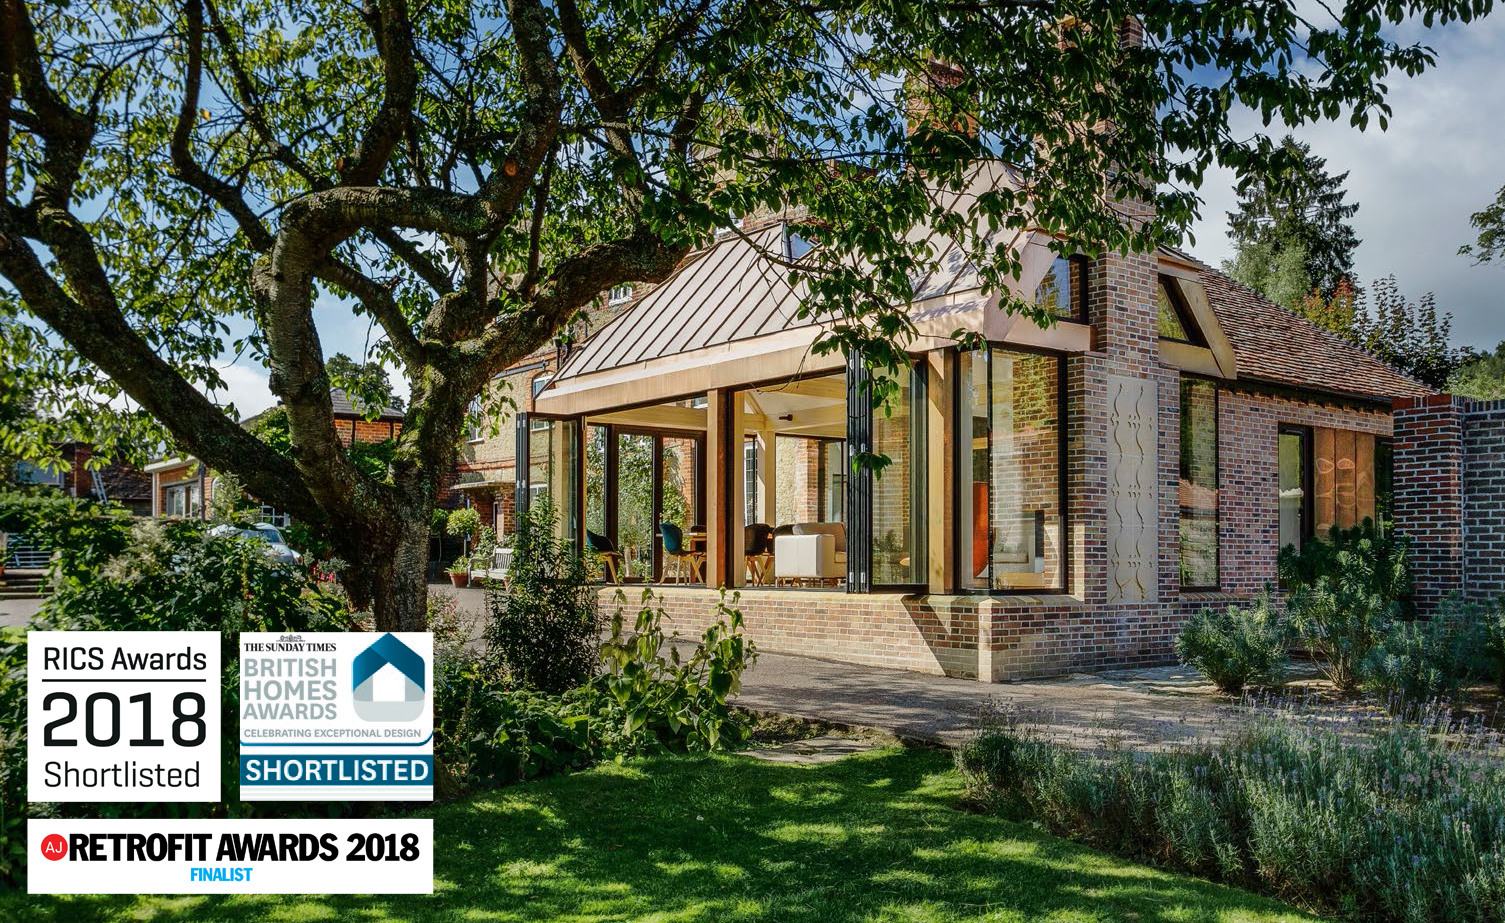 The_Mill_House_Awards_2018